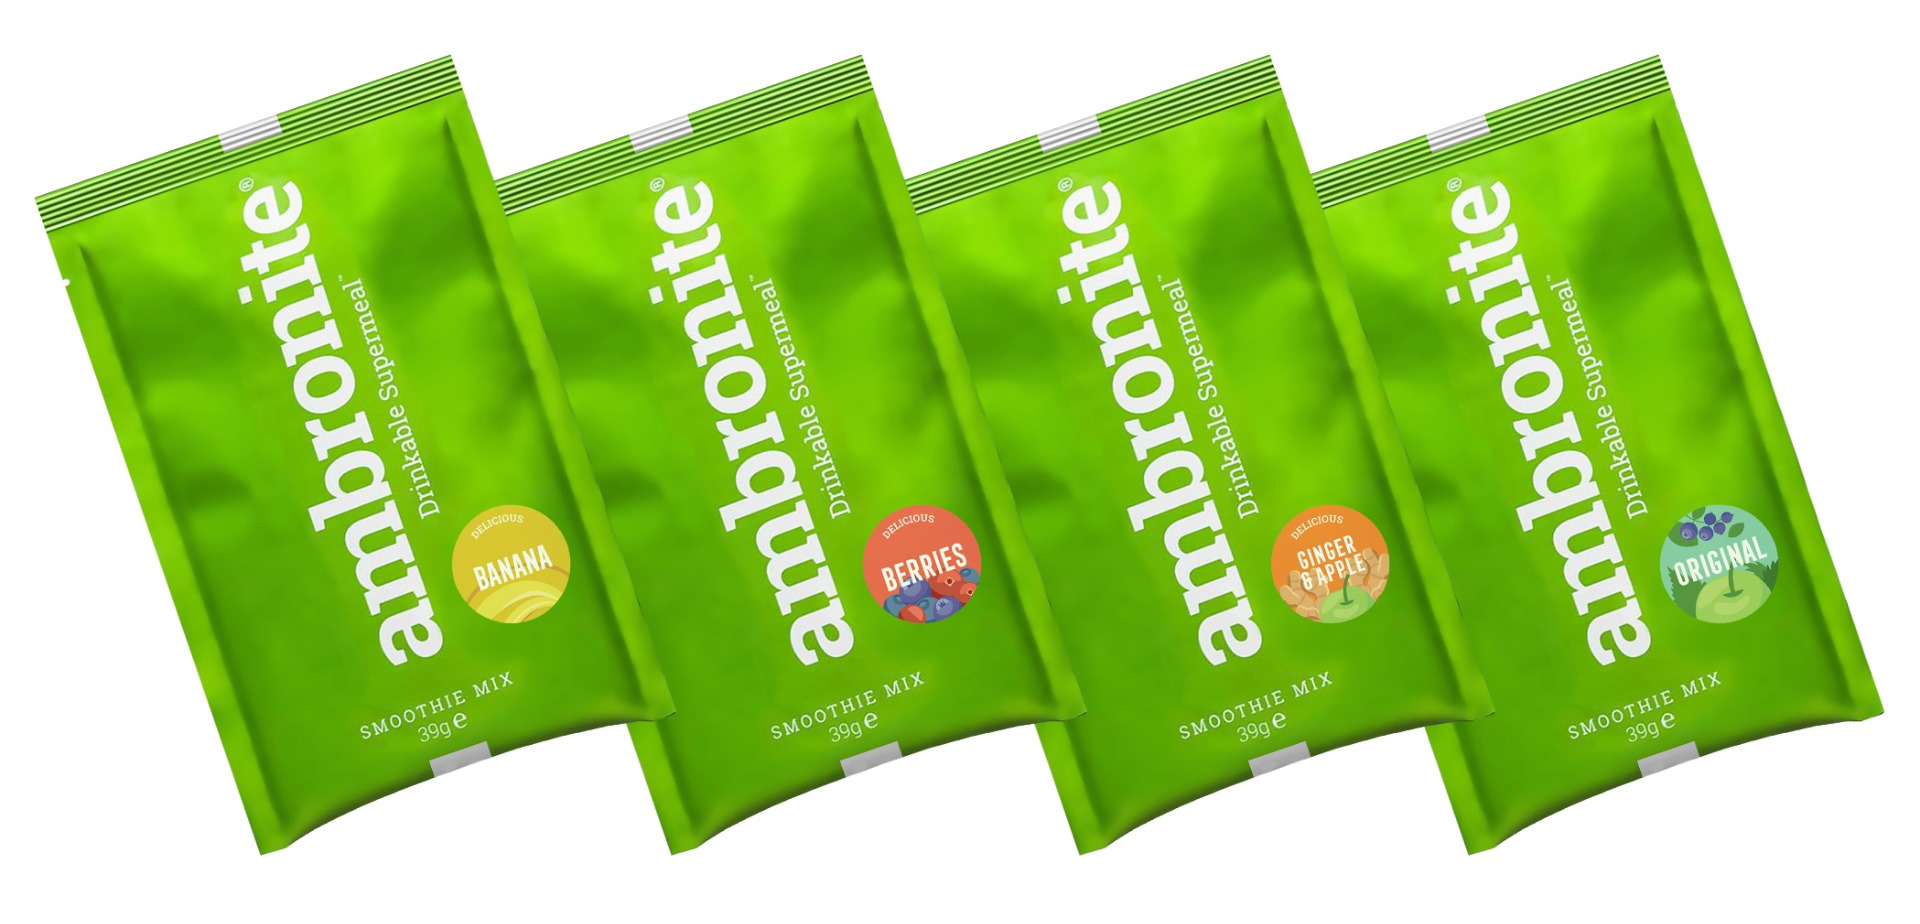 Ambronite Supermeal 4x165 sample pouch